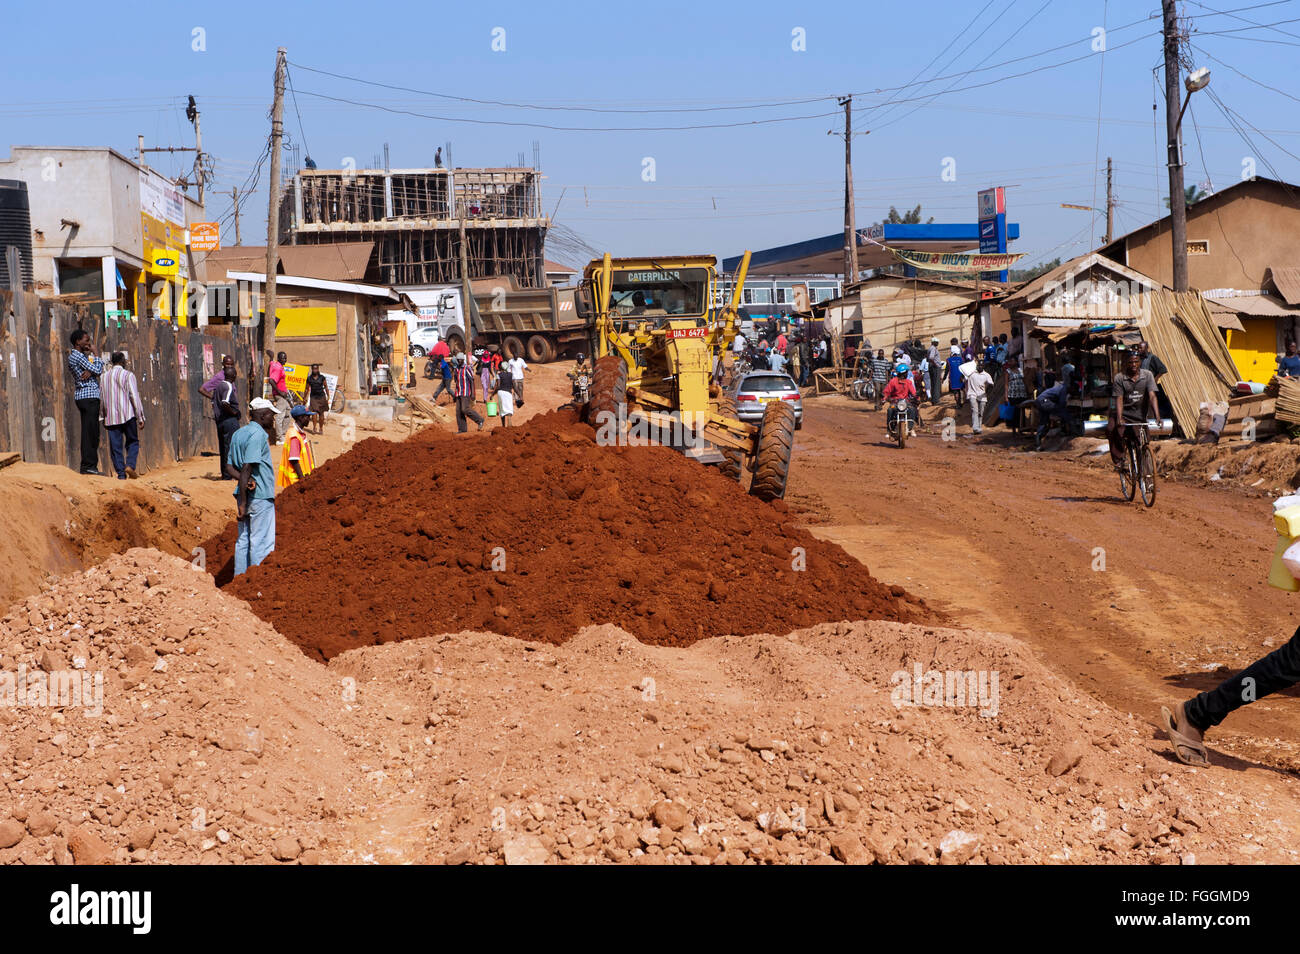 Street repairs in Ugandan town, as large earth movers mend a stretch of road. - Stock Image